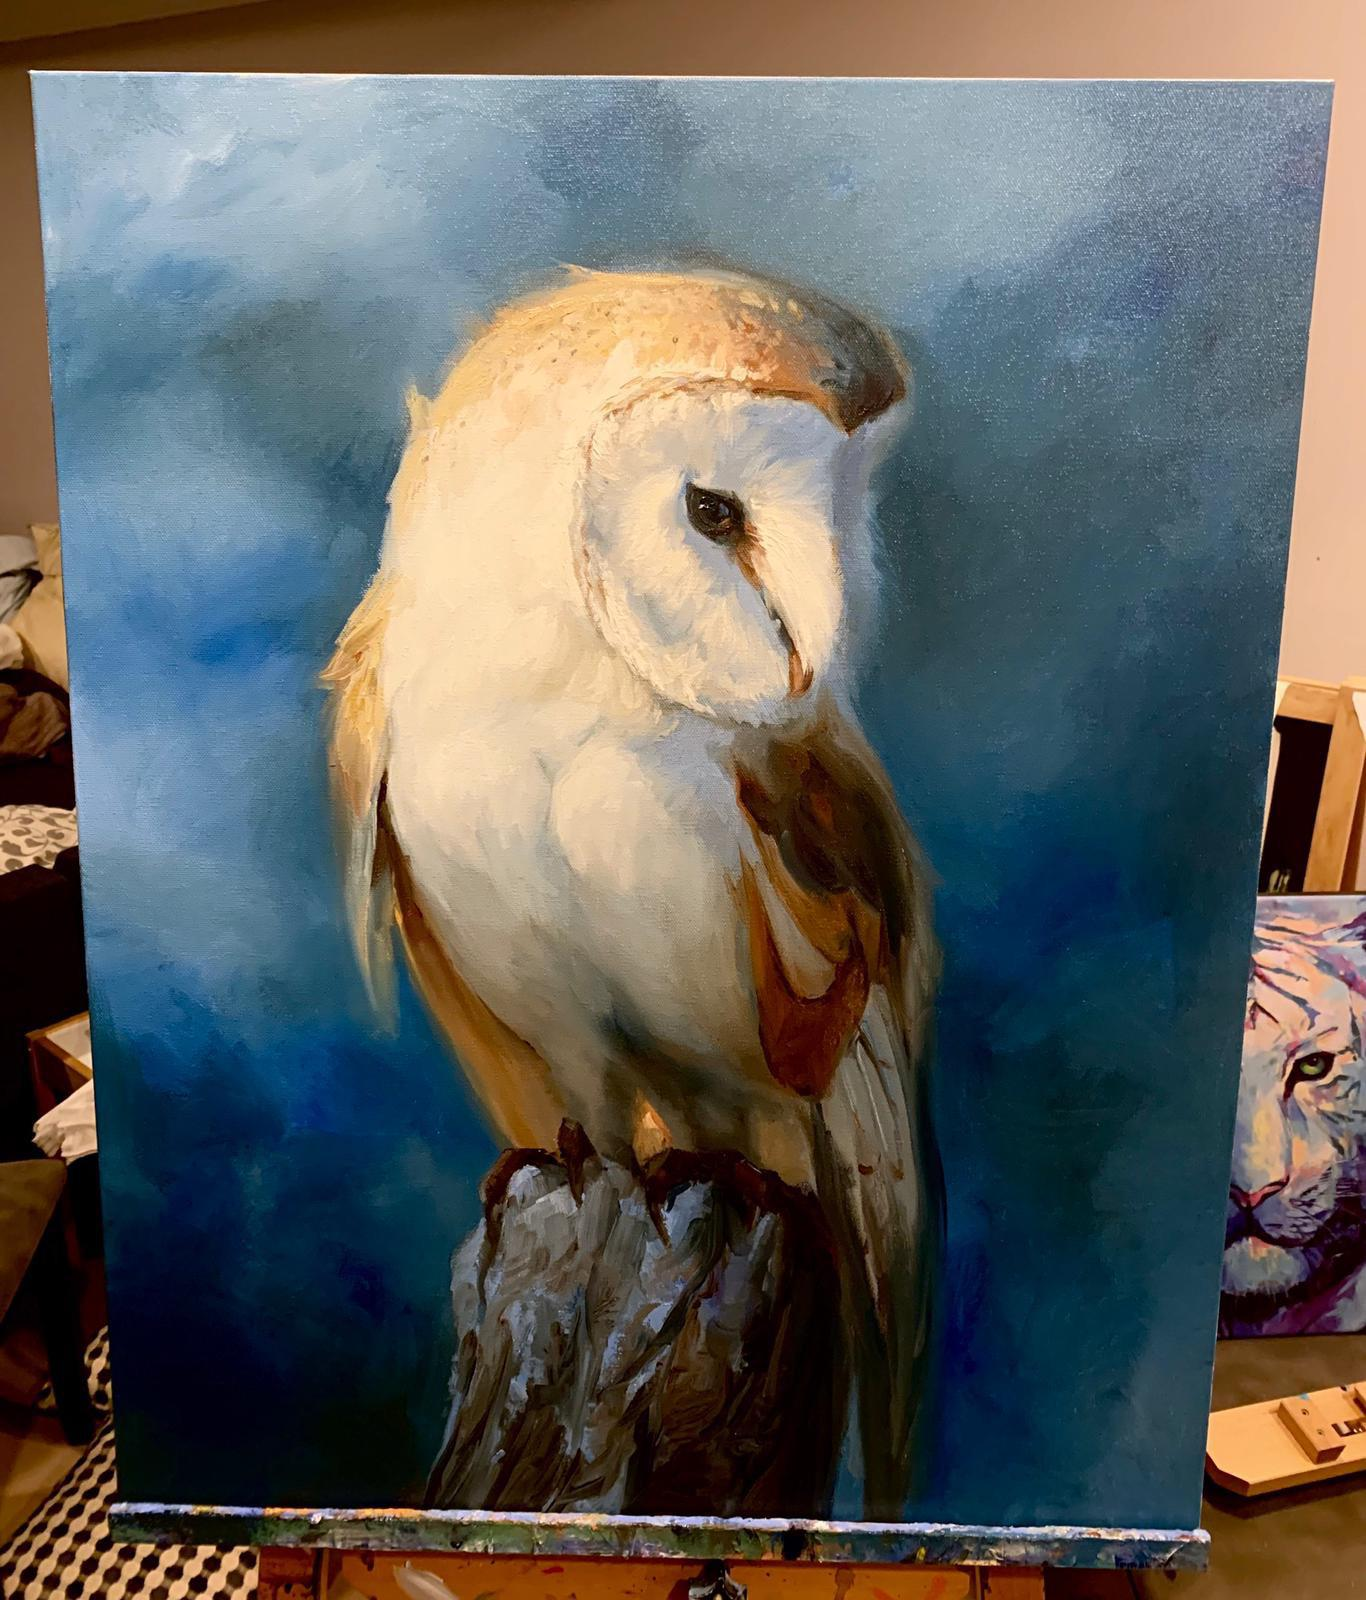 Barn Owl I just finished painting